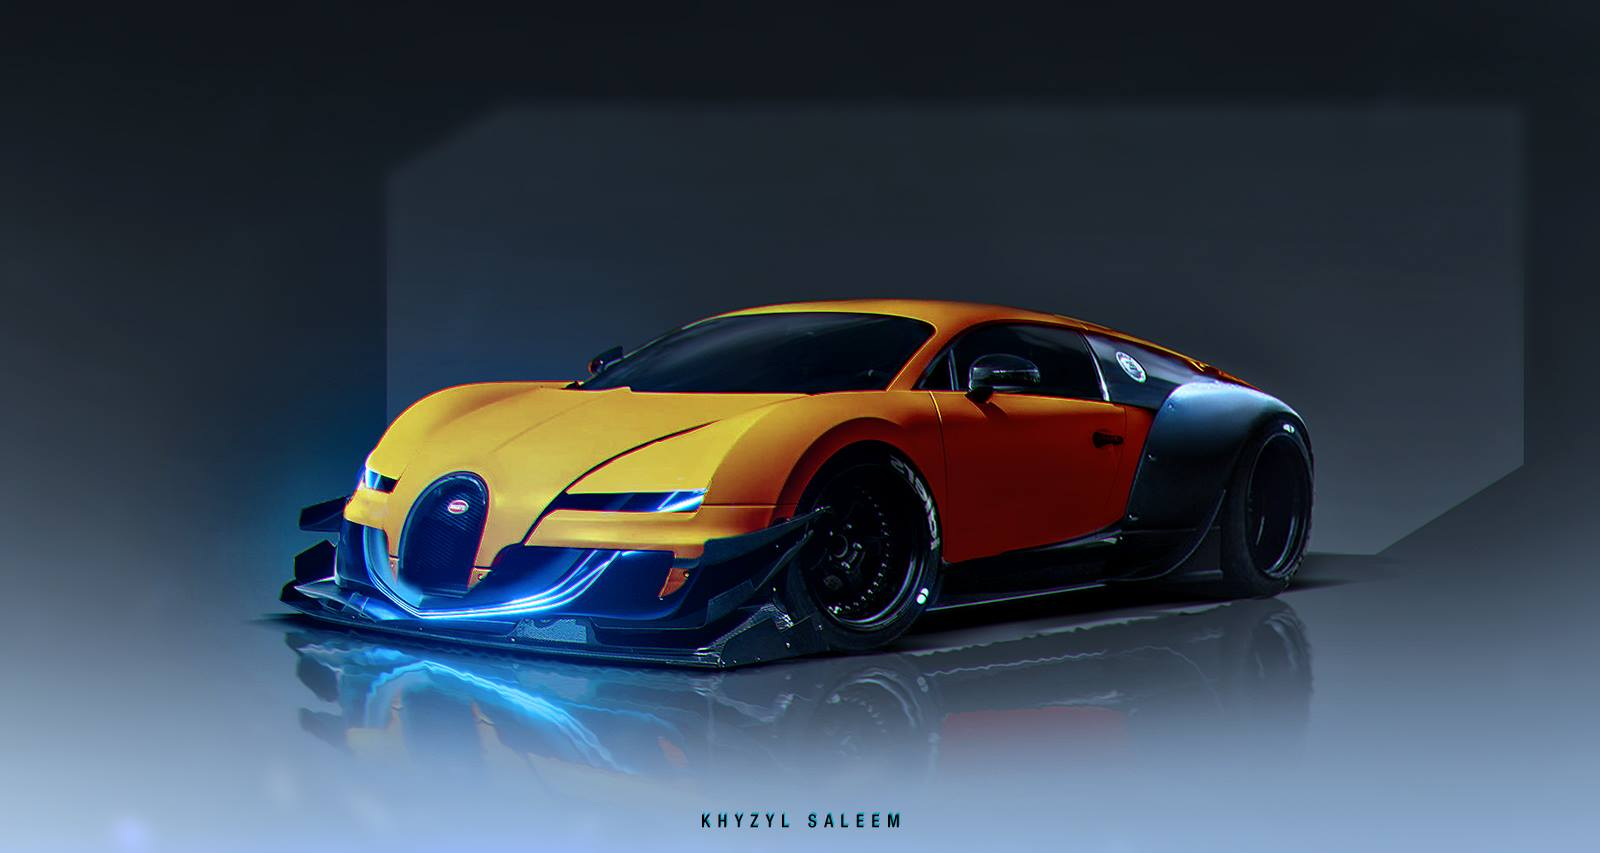 The Kyza S Profile Autemo Com Automotive Design Studio HD Wallpapers Download free images and photos [musssic.tk]